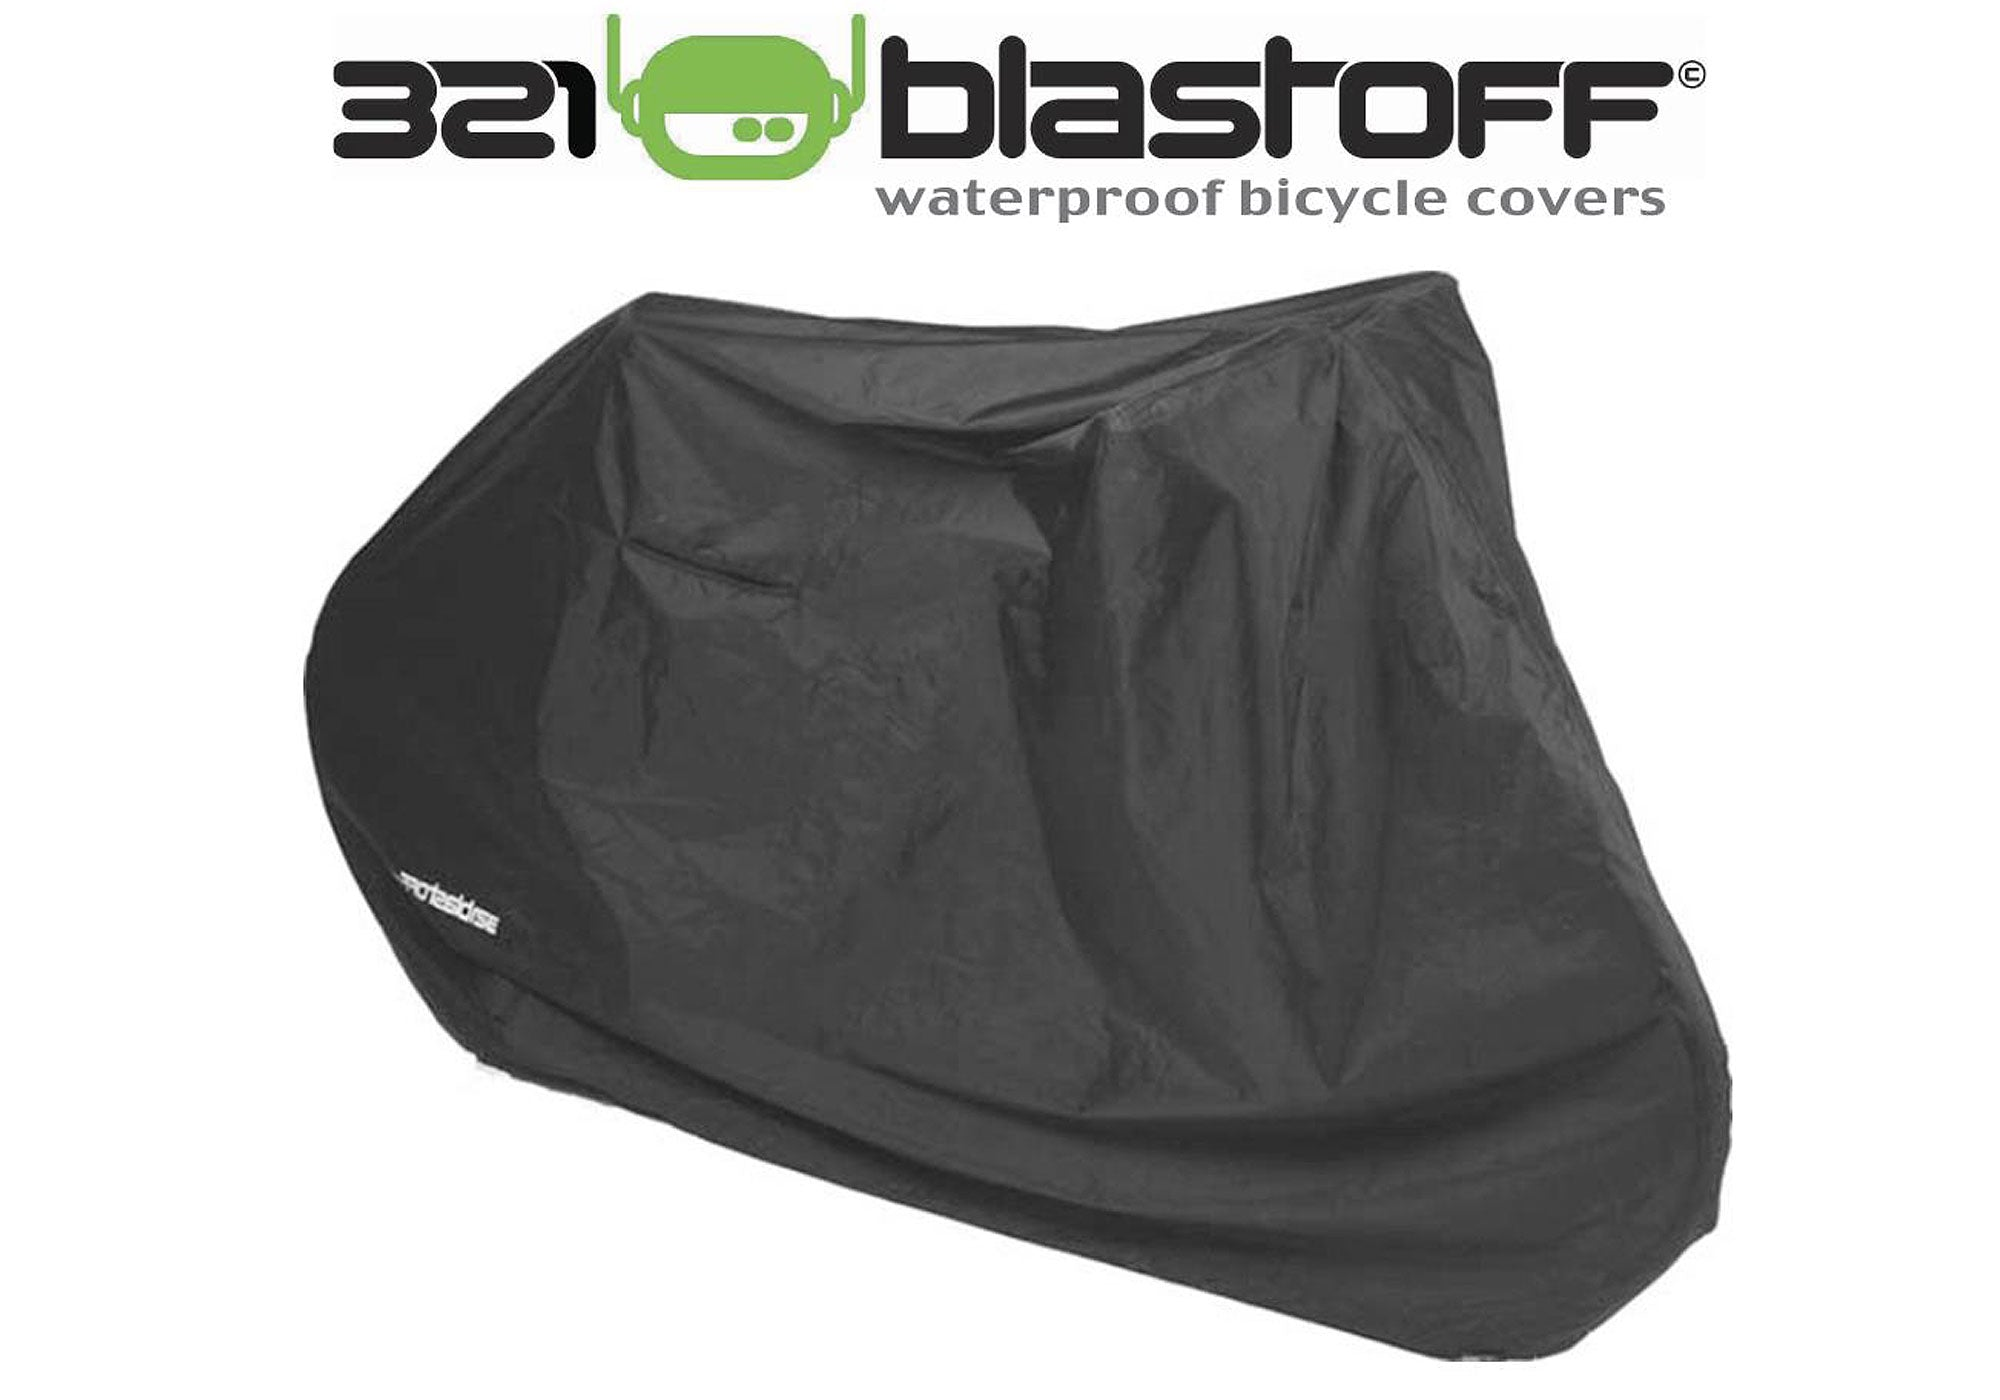 Blastoff Waterproof Bike Cover for MTB and Road Bikes, Woolys Wheels Sydney